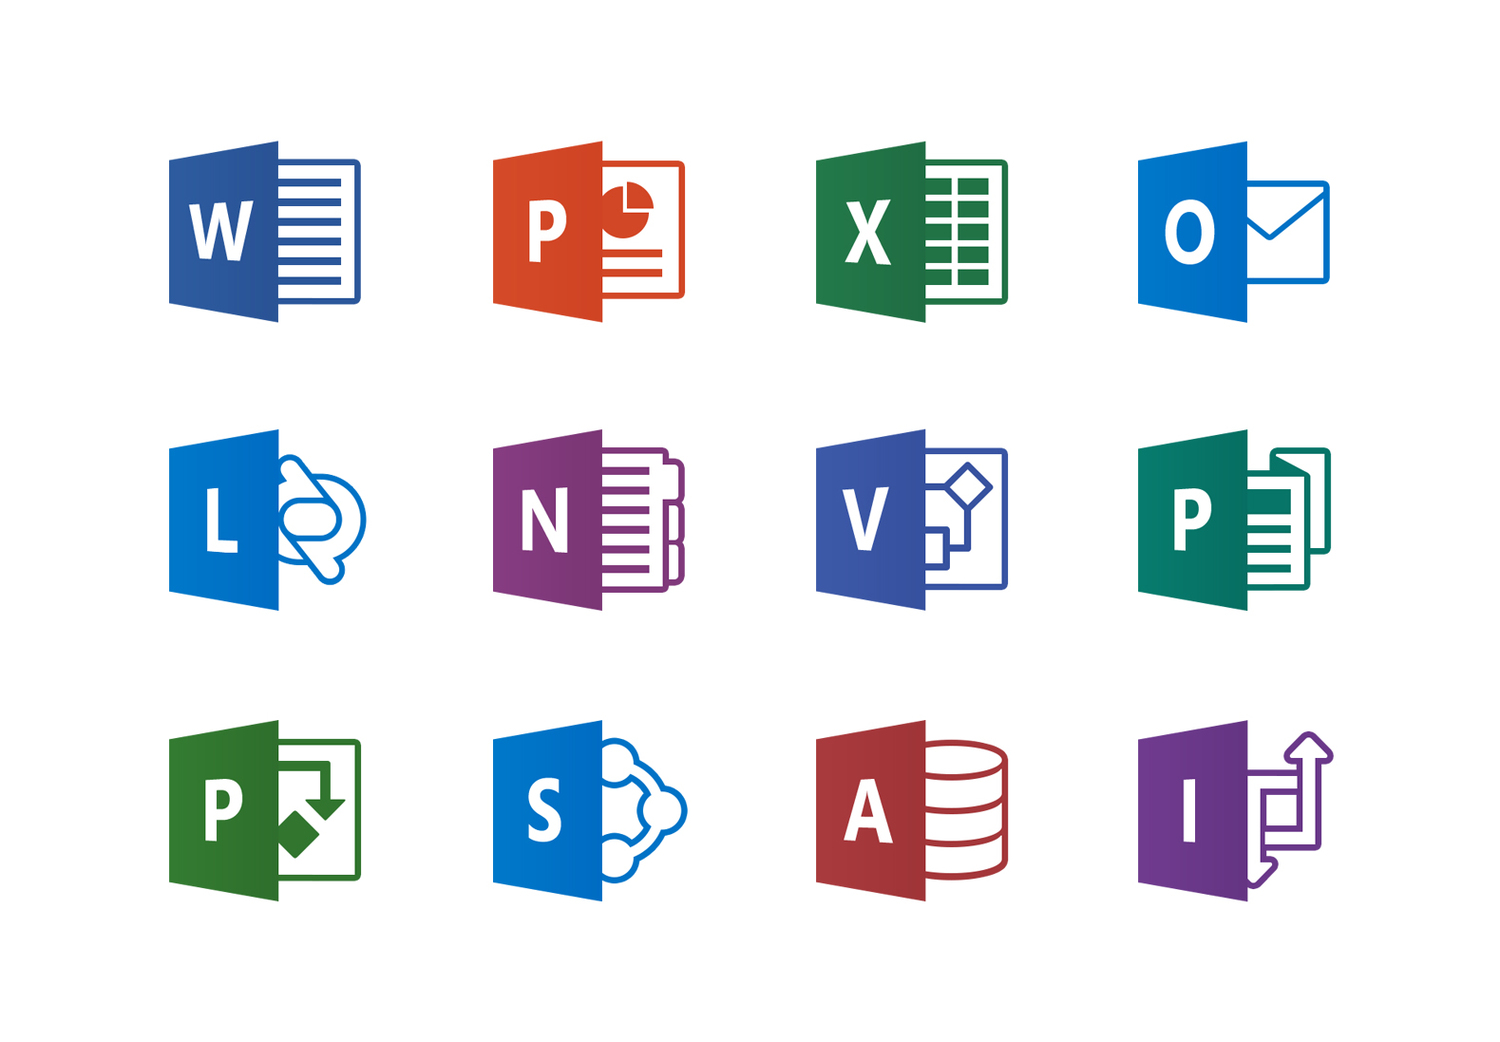 microsoft office product icons � pablo rochat